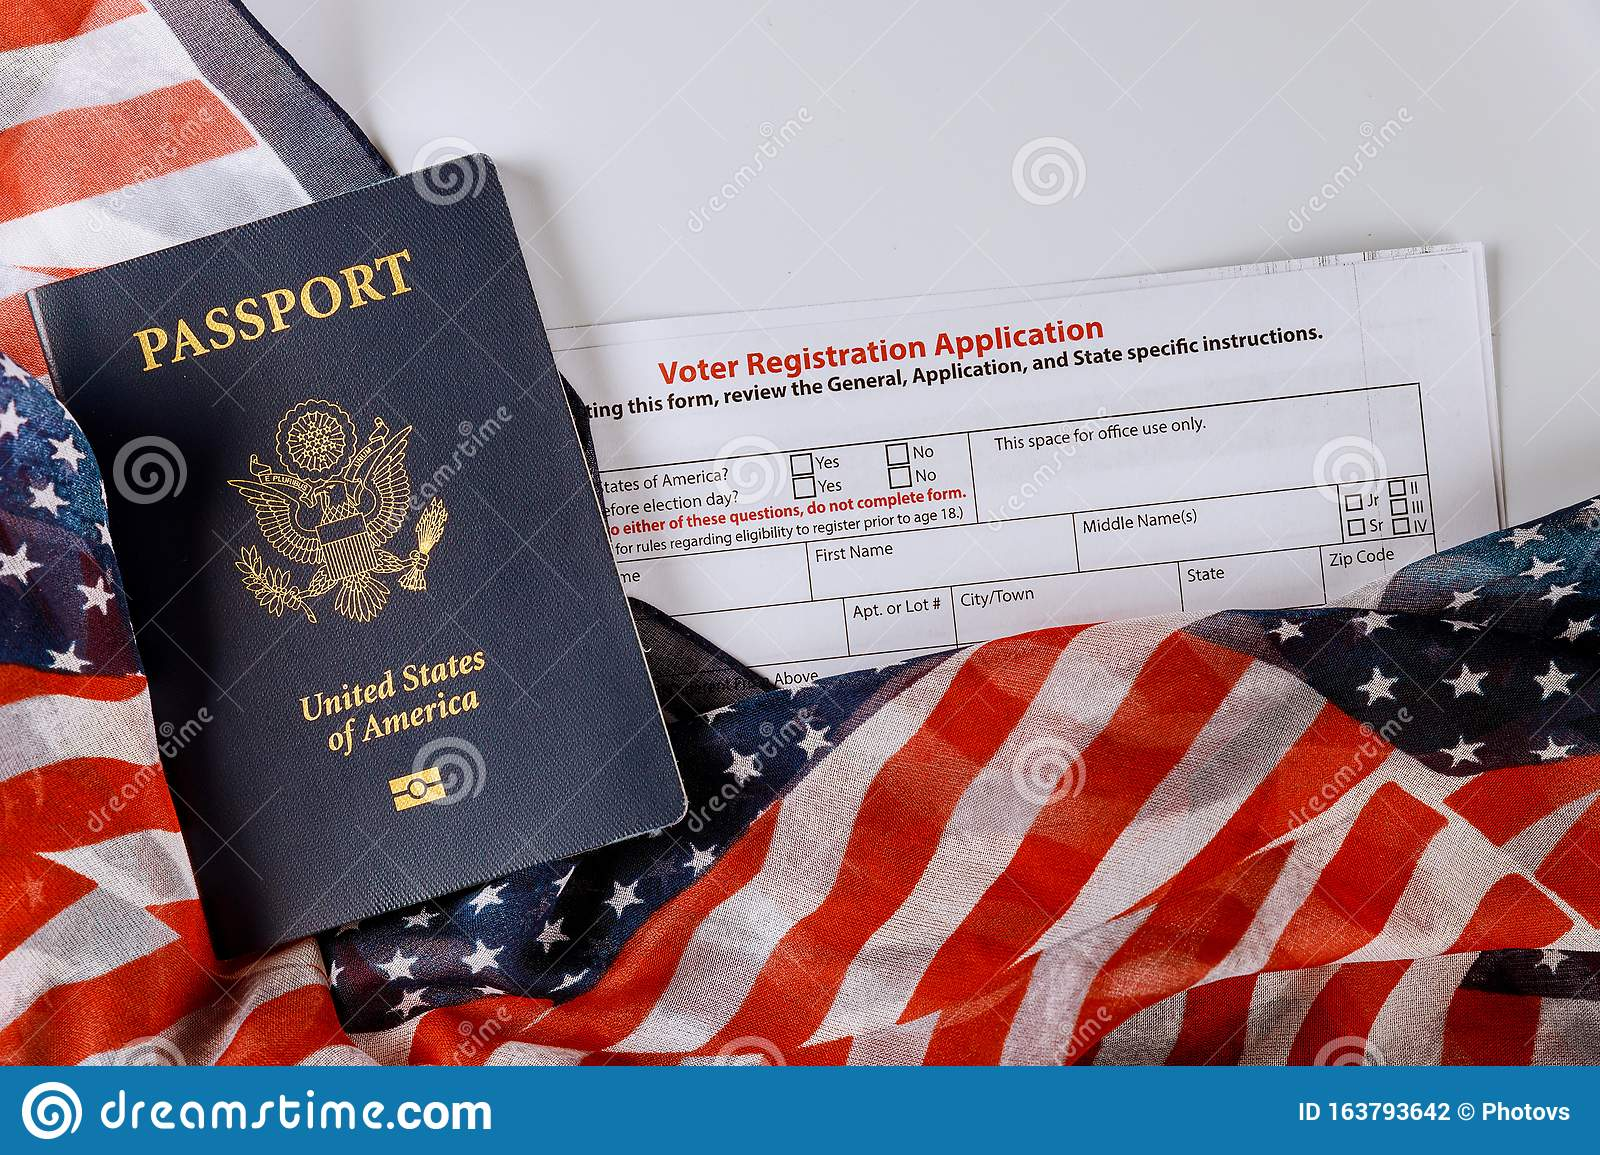 United States Passport Of American Vote Registration Form